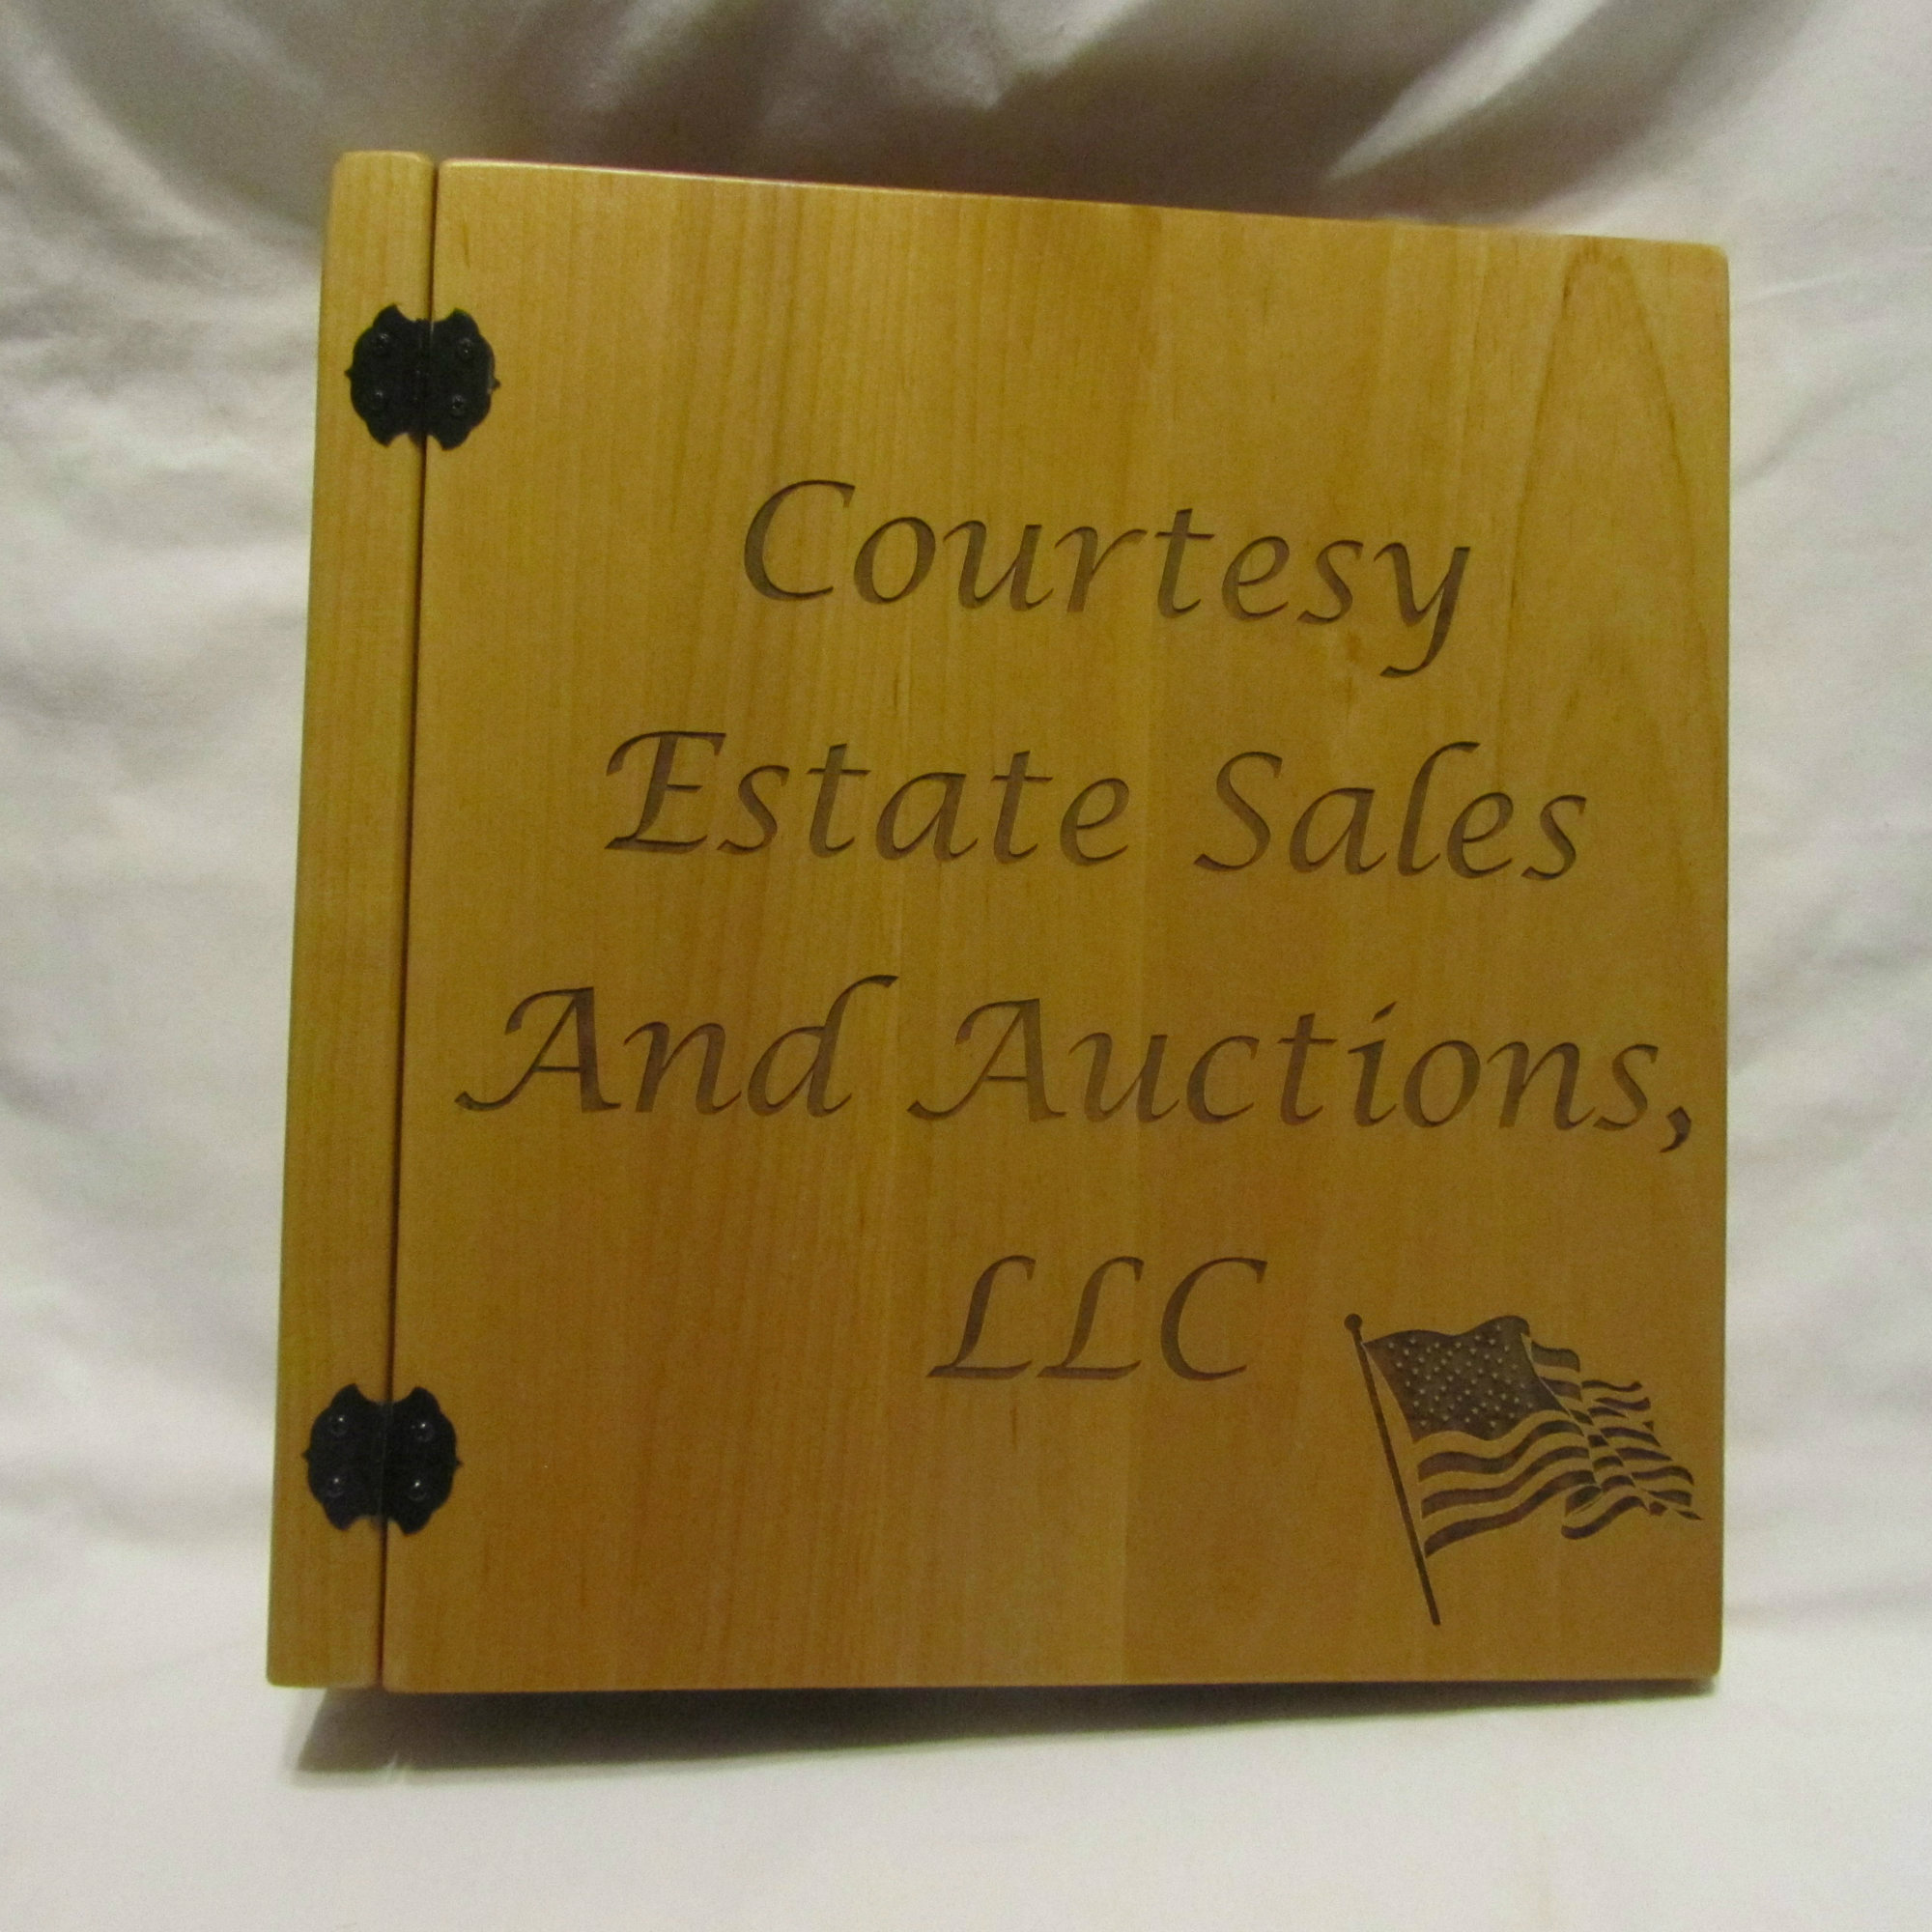 Personalized Photo Album For Auction Business